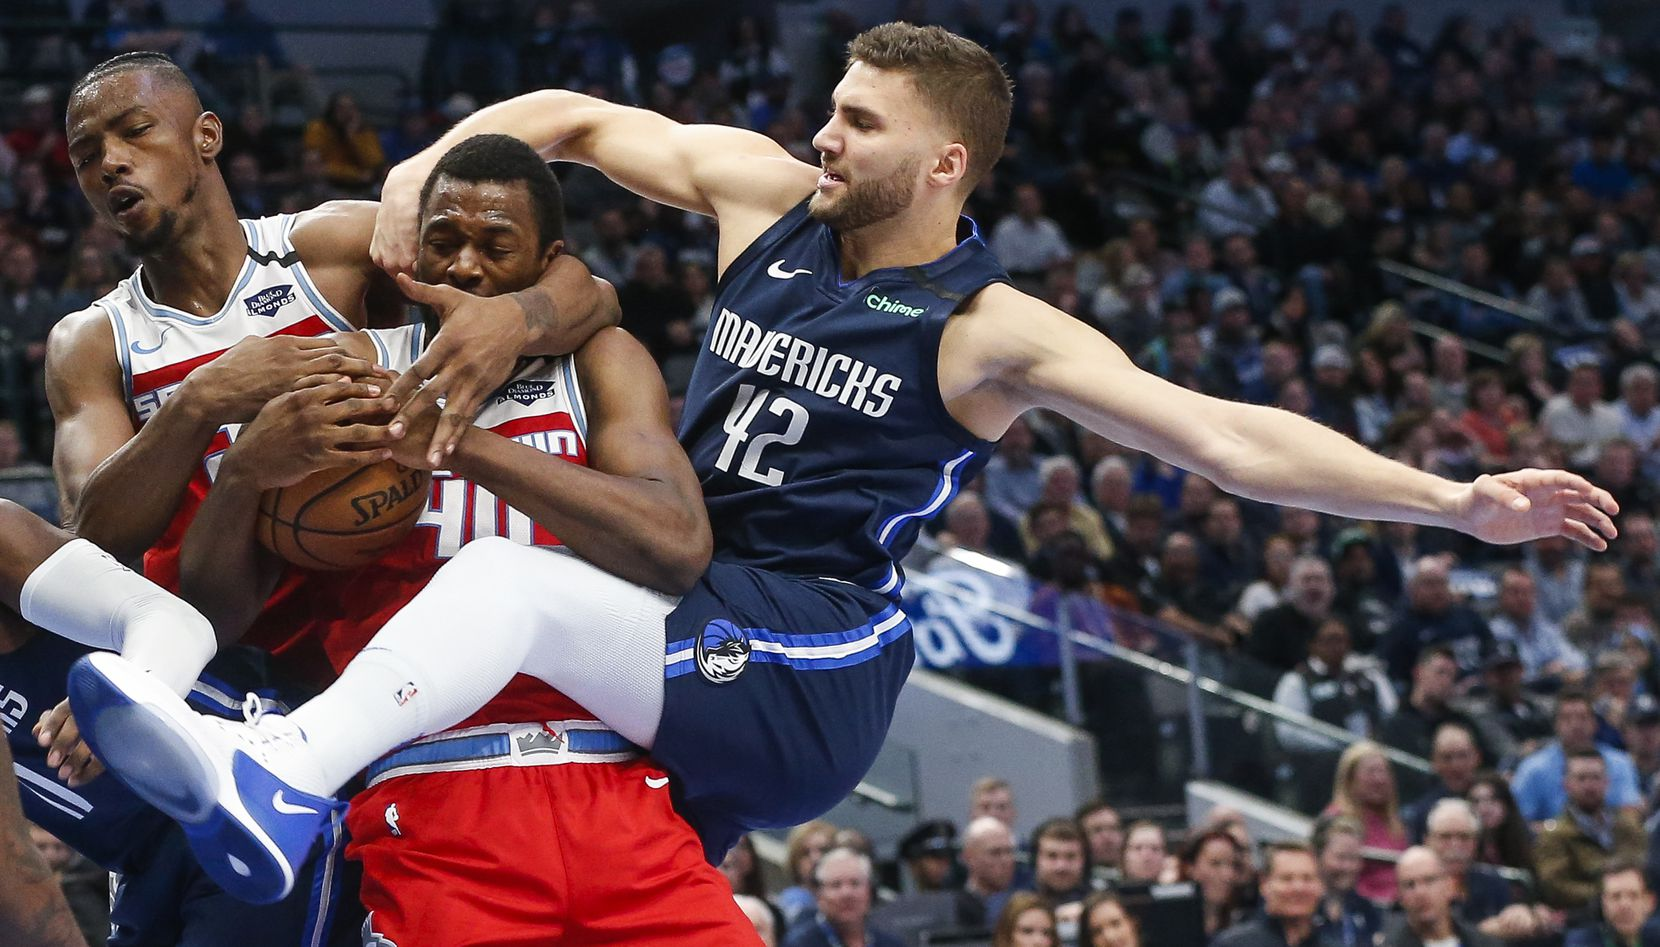 Mavericks forward Maxi Kleber tangled with Sacramento's Harry Giles III (left) and former Maverick Harrison Barnes while going for a rebound in February at American Airlines Center. Four weeks later, the season was shut down for over four months.